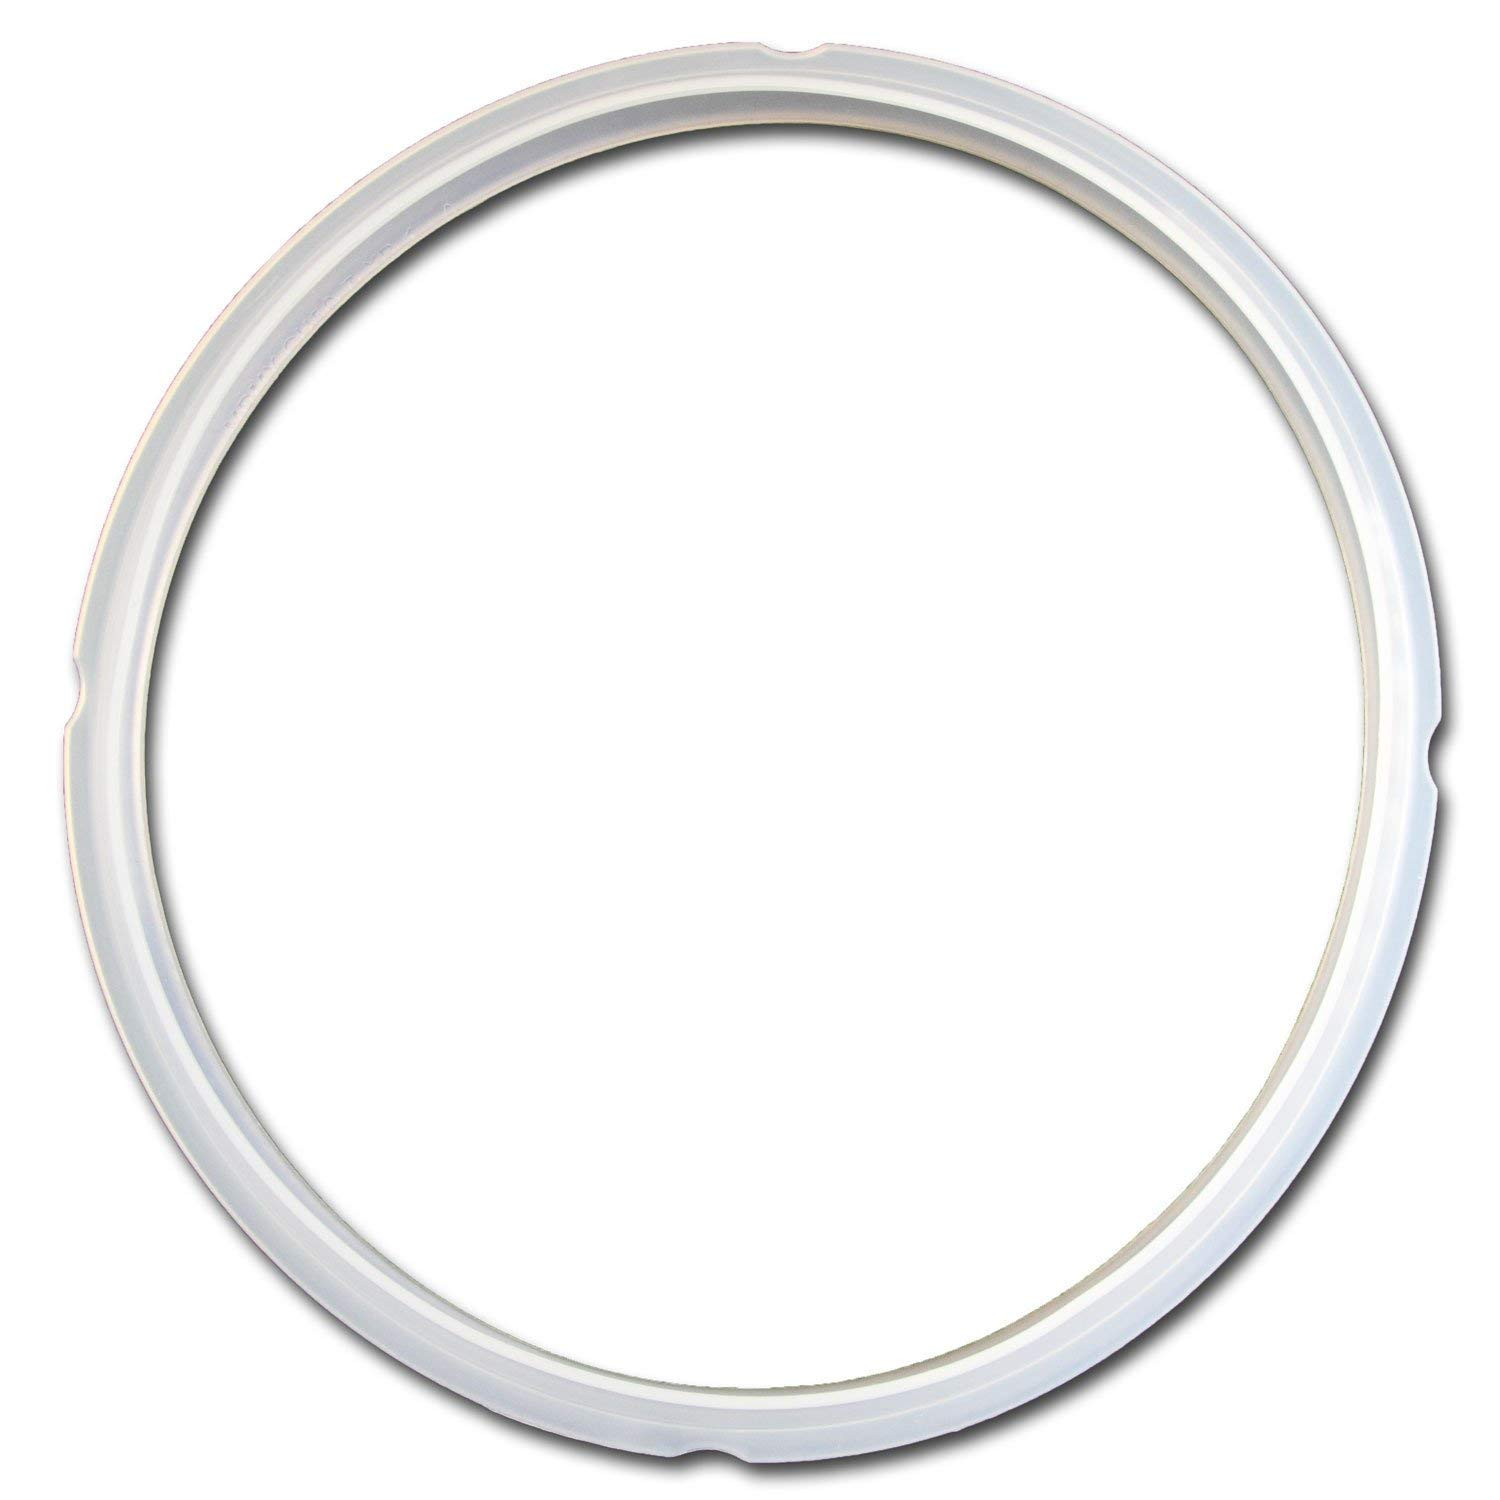 Rubber Gasket for 10 Quart Power Pressure Cookers (Don't buy for other brand or model of cookers as it will not fit)